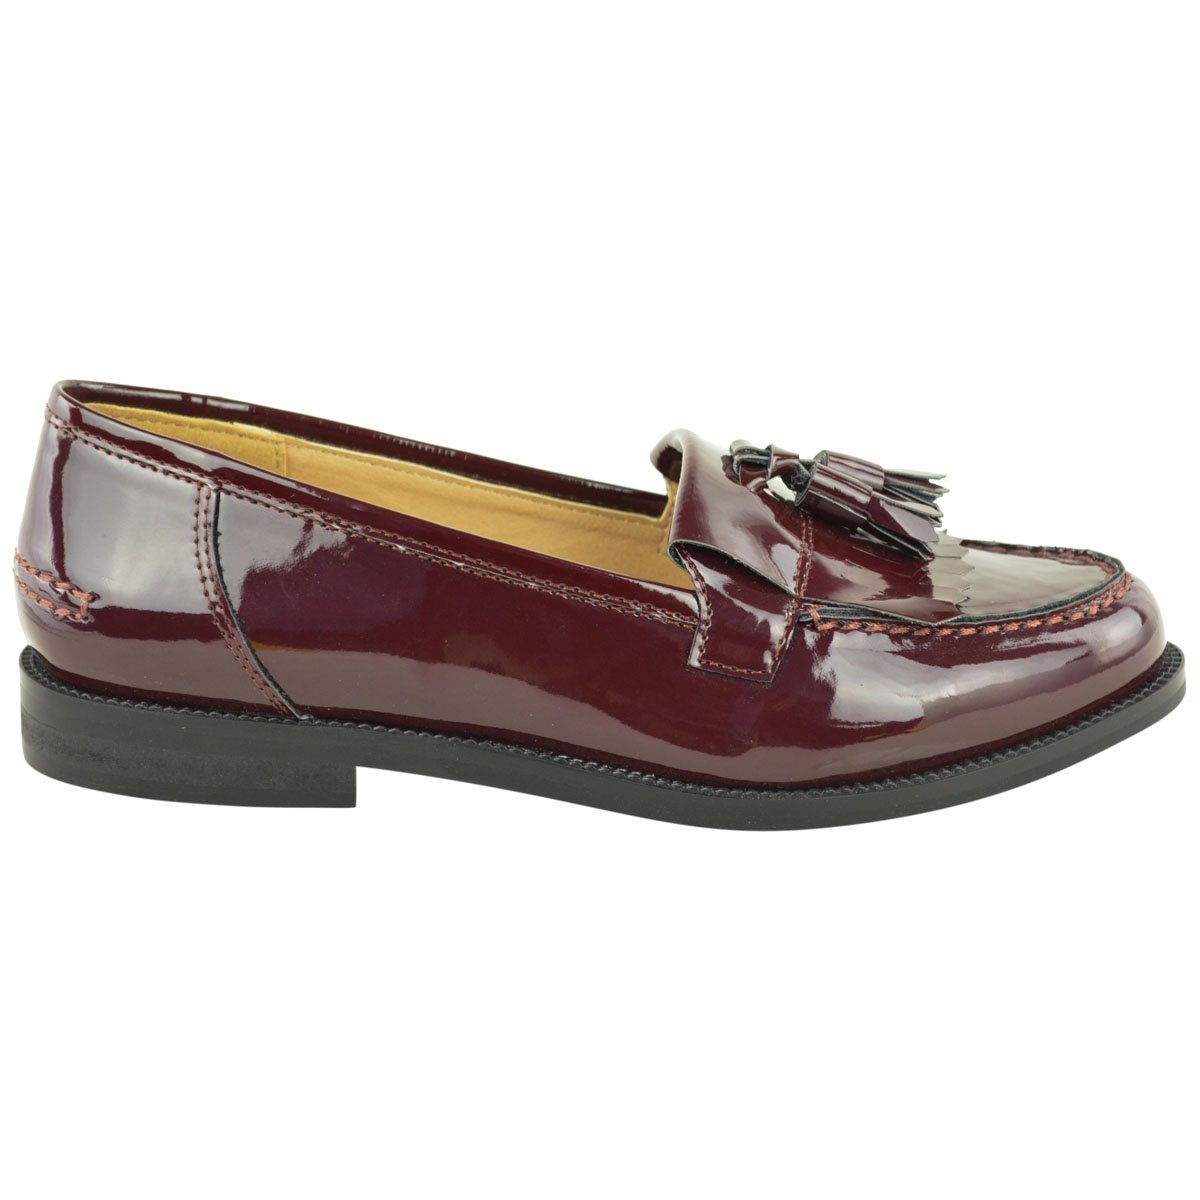 Womens-Ladies-Loafers-Brogues-Pumps-Casual-School-Office-Comfy-Work-Flats-Size thumbnail 35